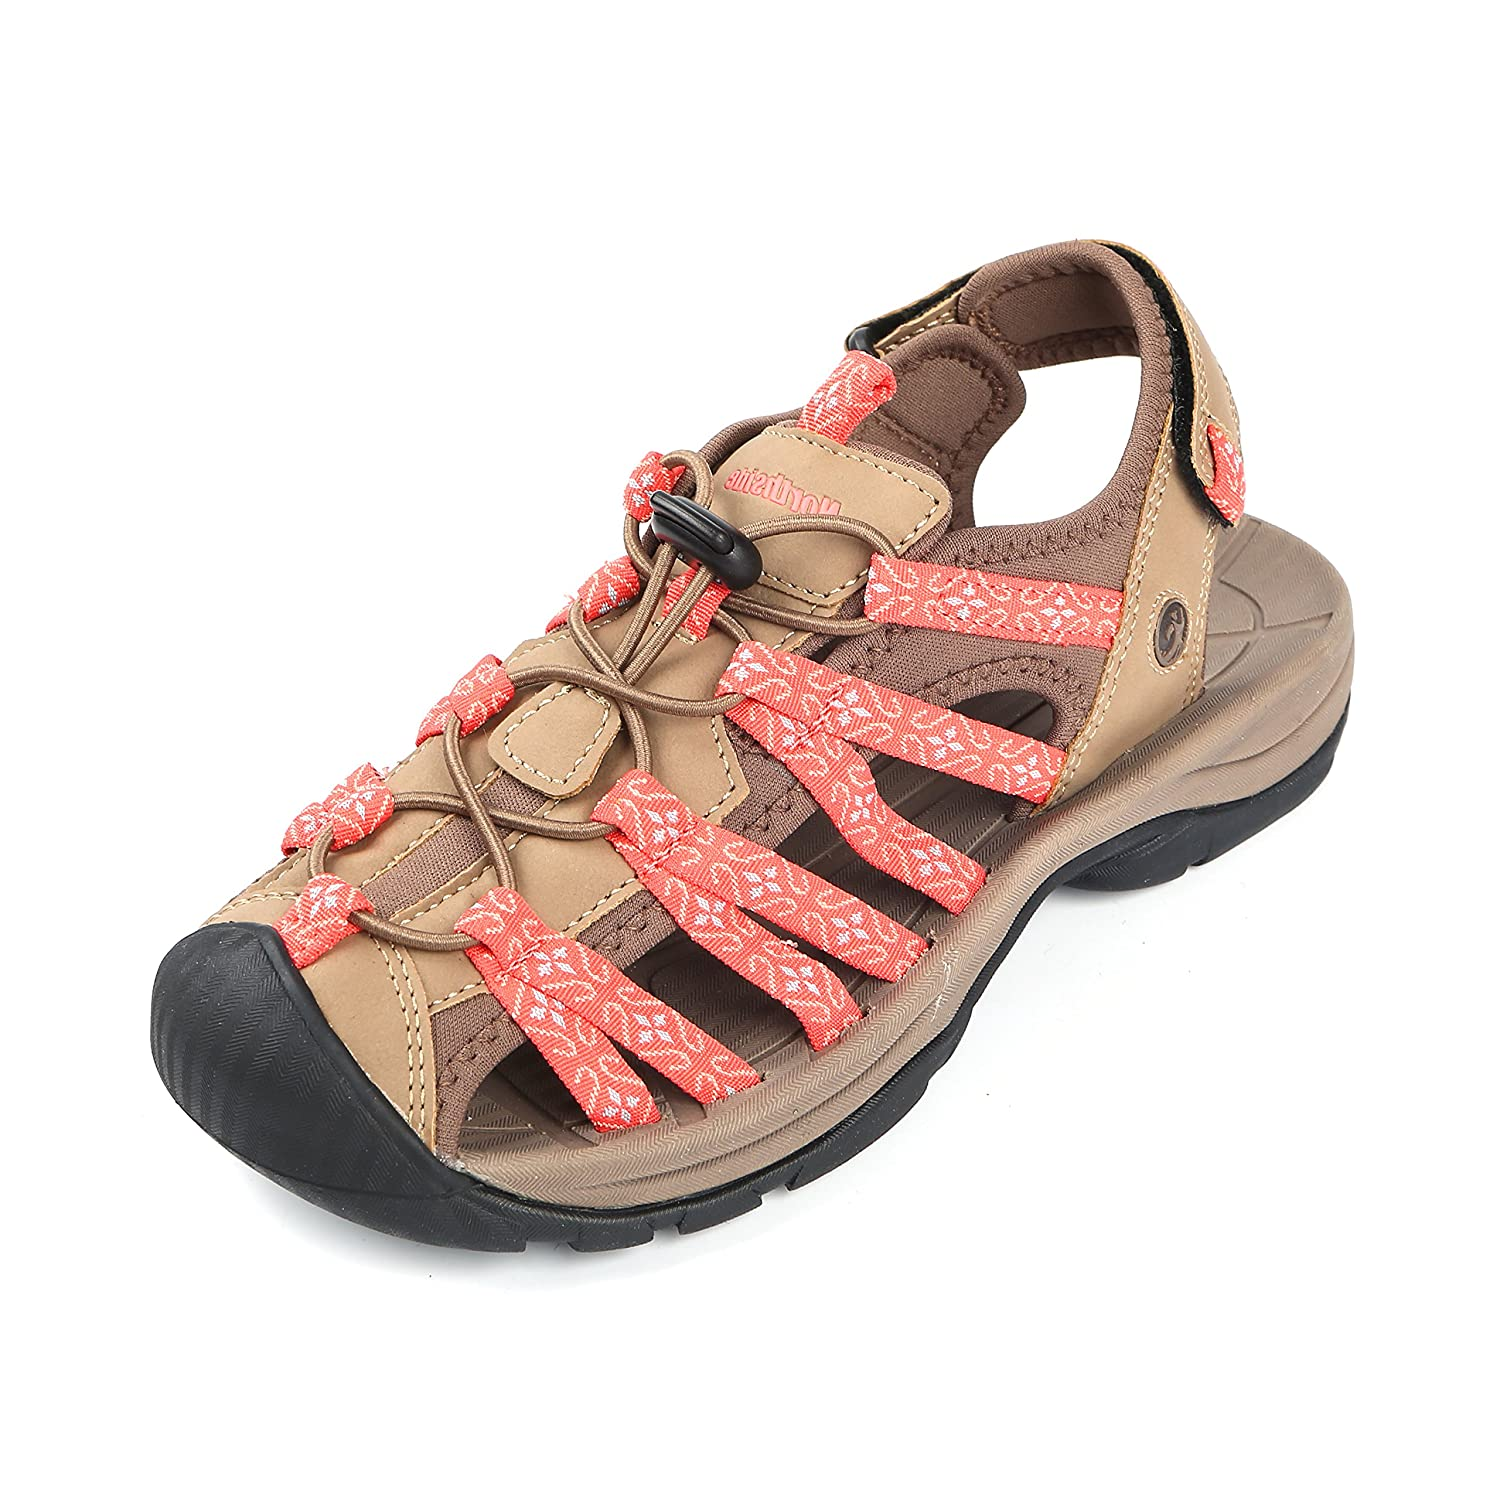 Northside Womens Savannah Sport Closed Toe Sandal B079TH8NZJ 6 B(M) US|Tan/Coral